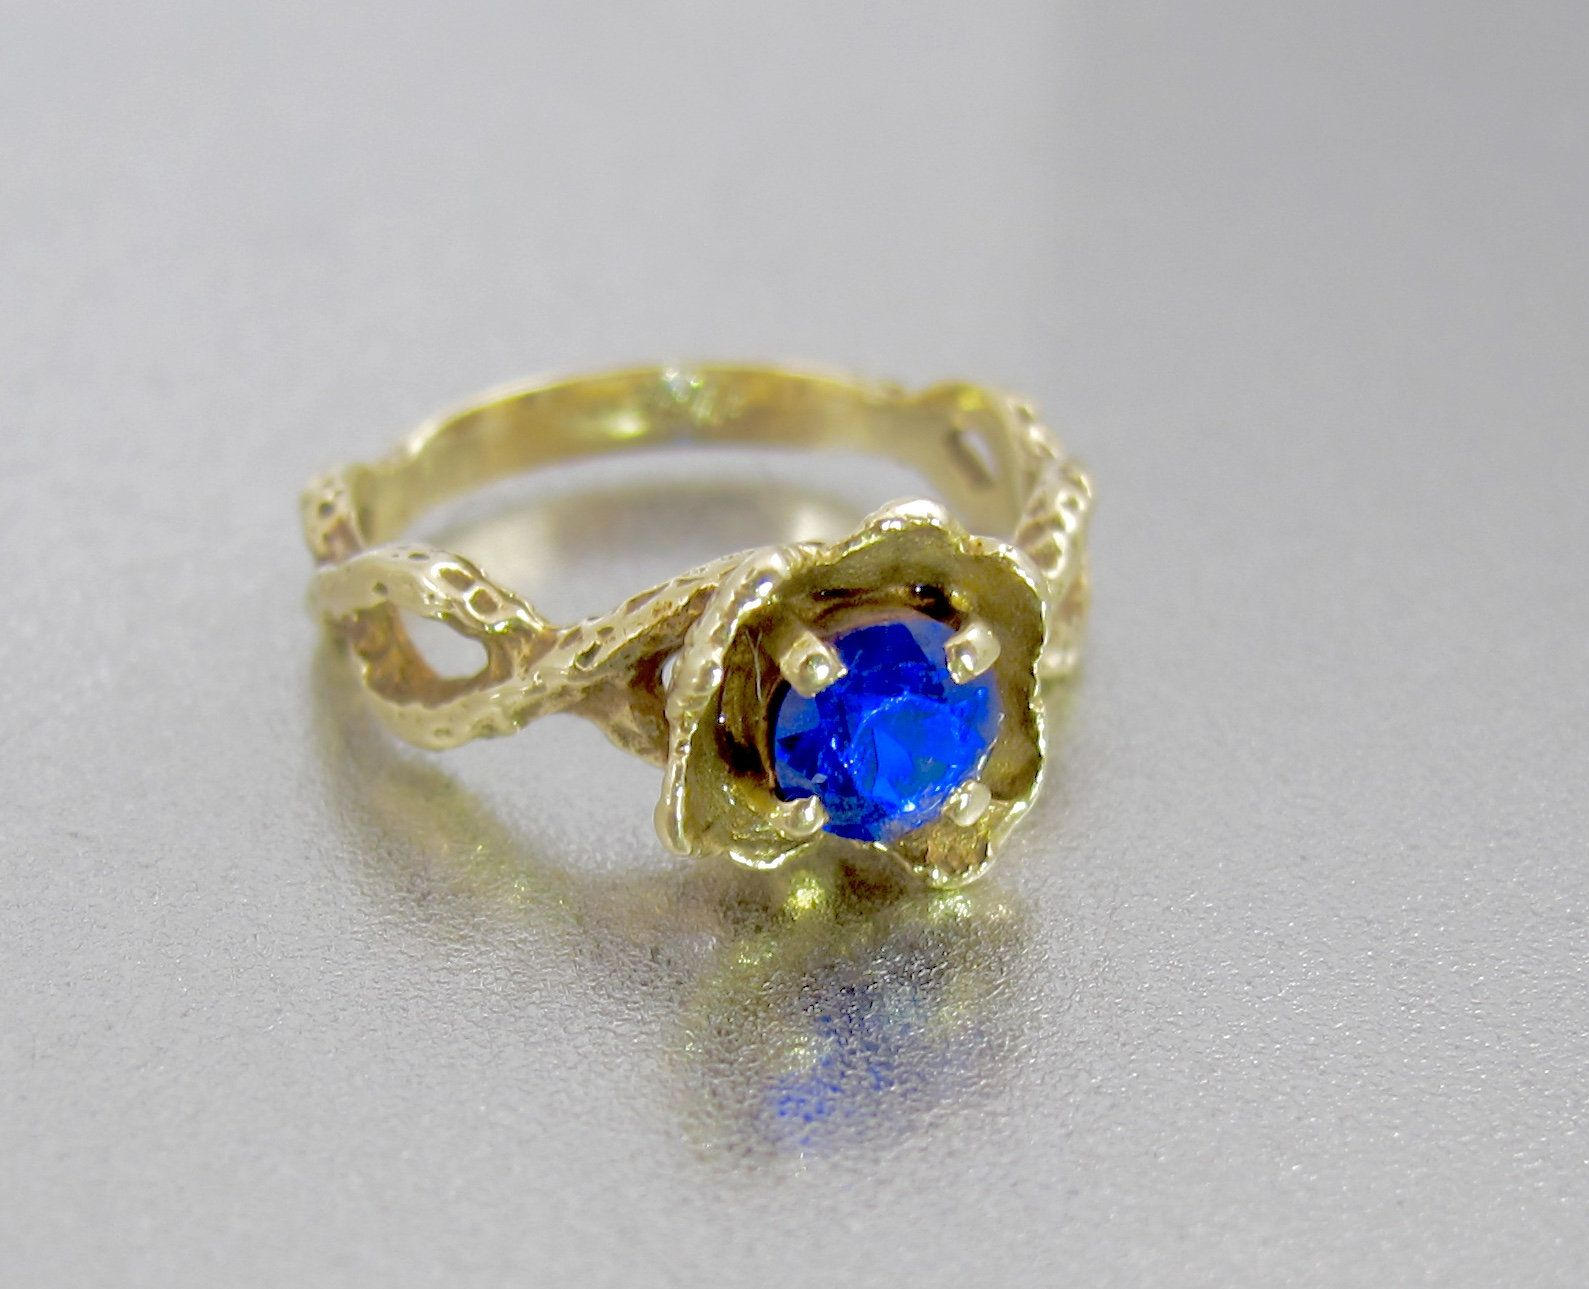 Gold Blue Iolite Flower Ring Vintage 10k Yellow Gold Sapphire Etsy In 2020 Yellow Gold Sapphire Opal Ring Gold Rose Gold Opal Ring